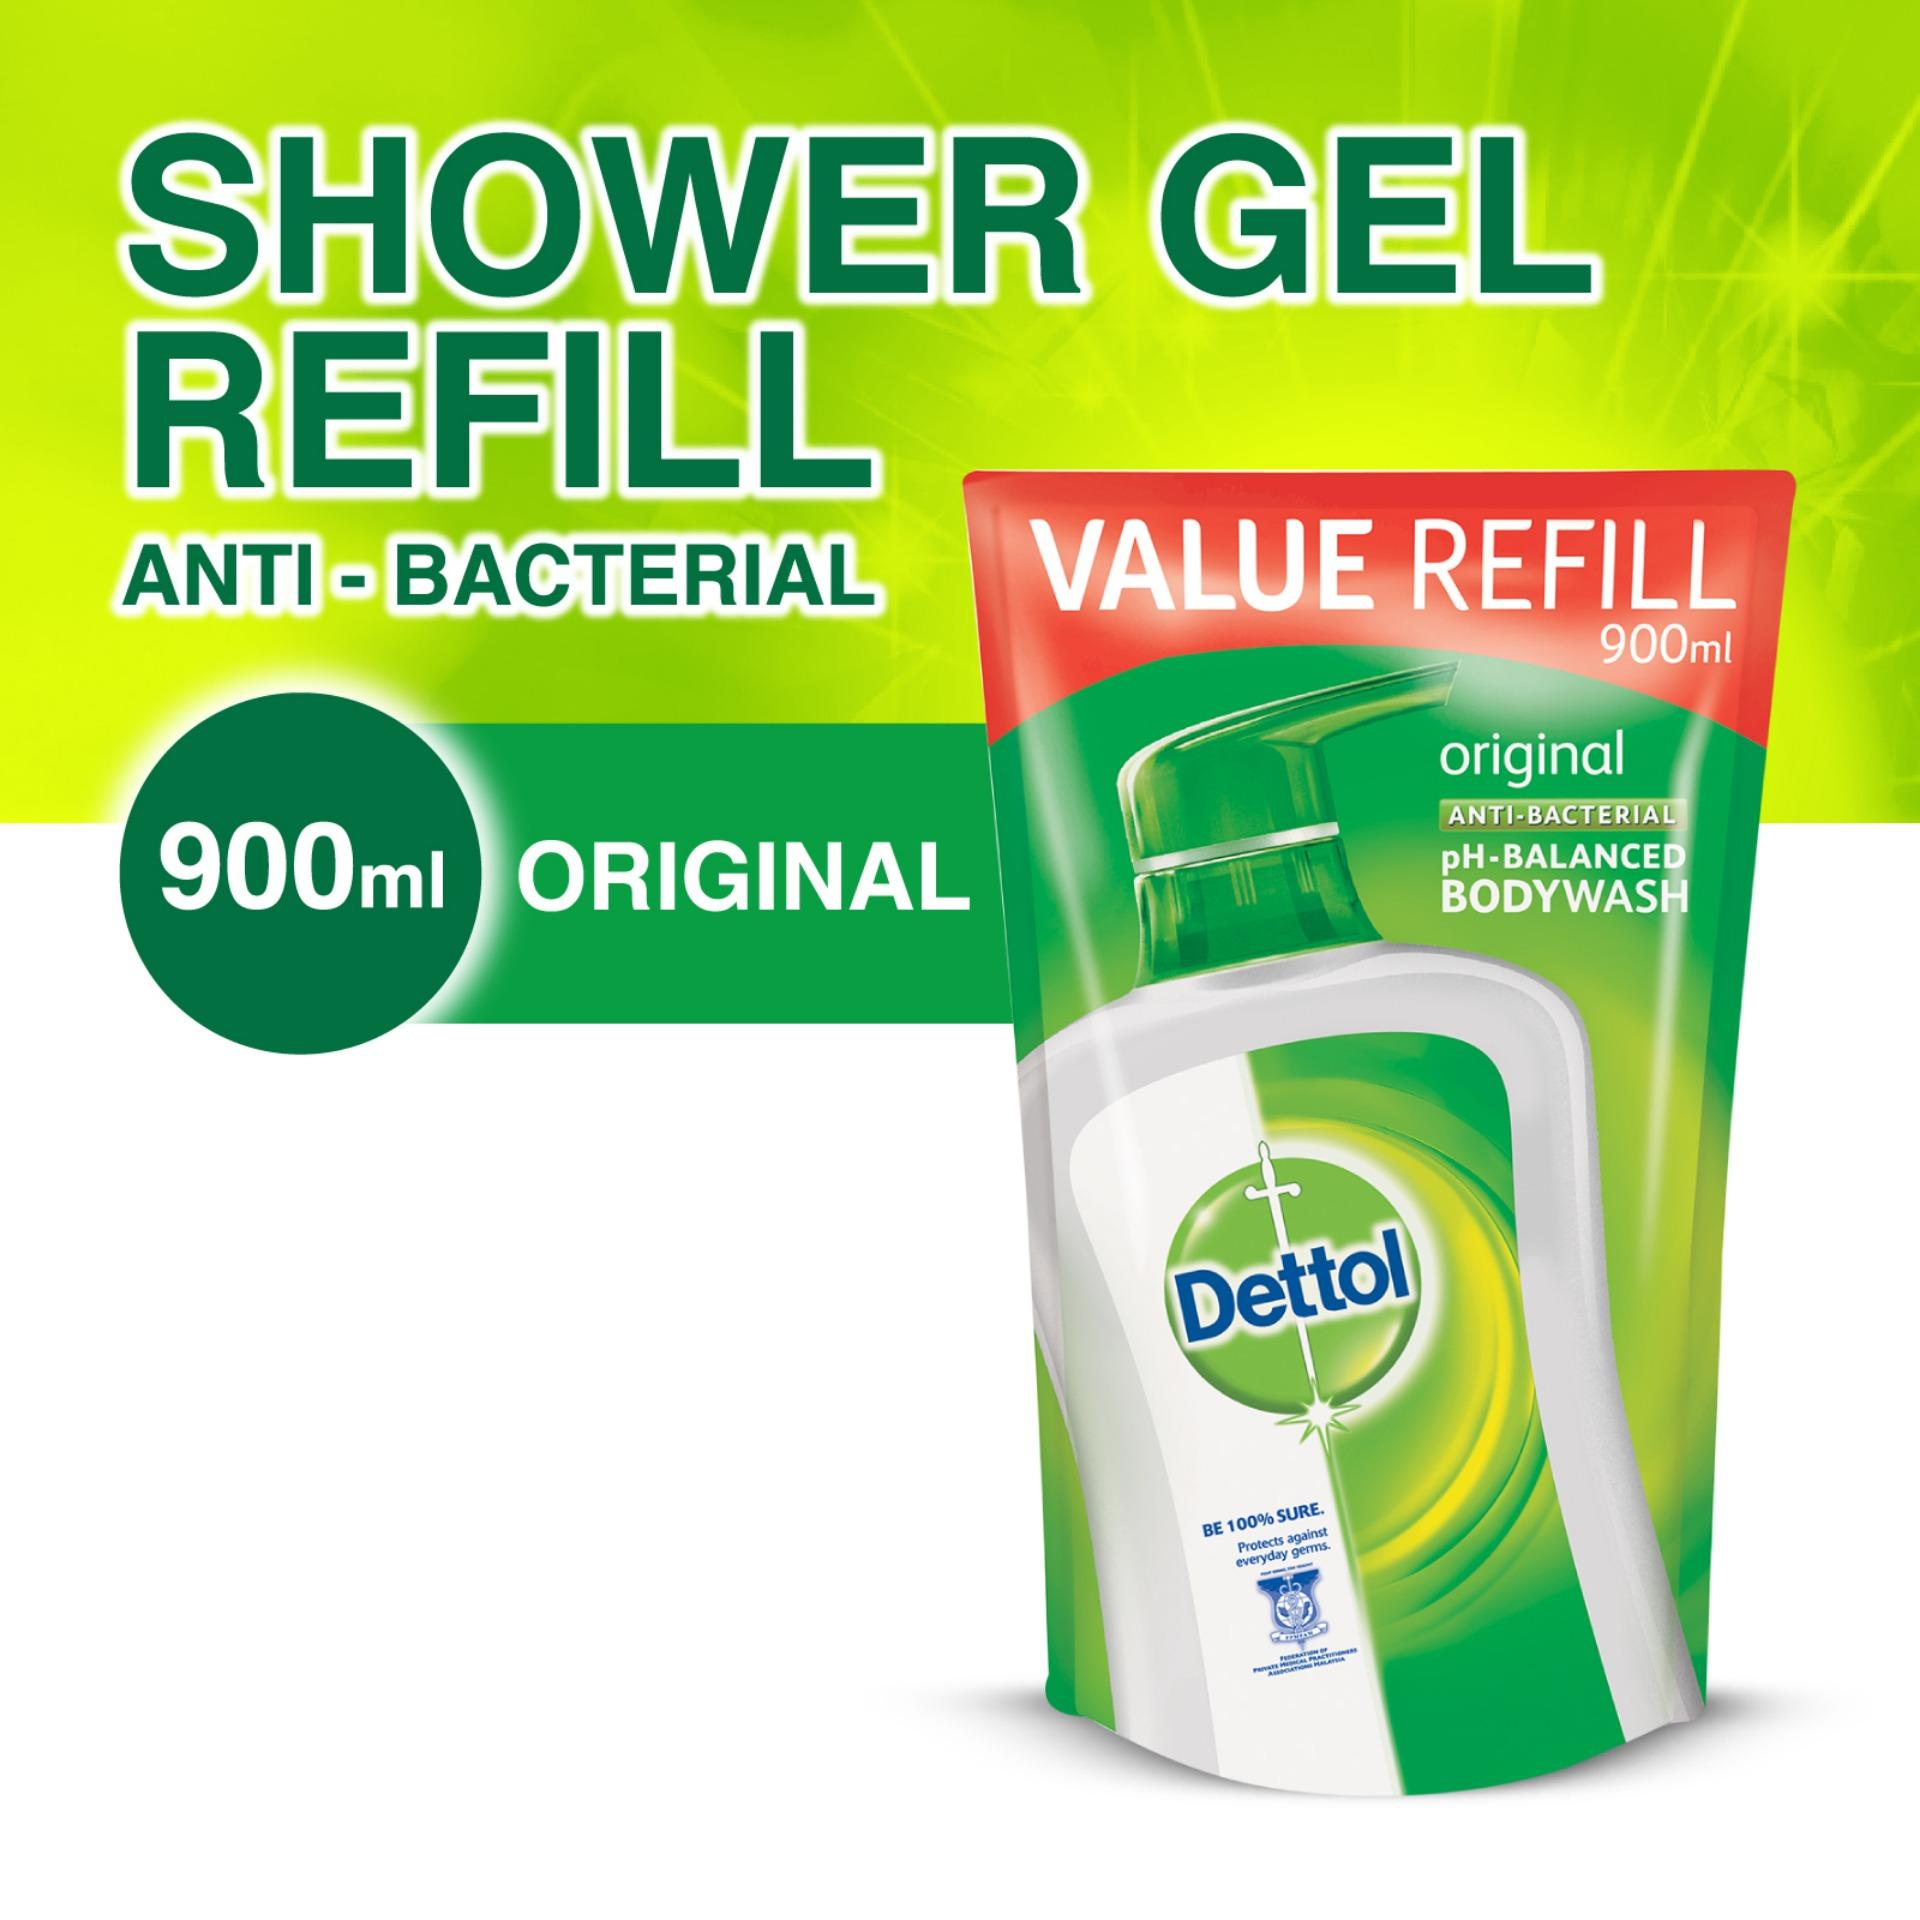 Dettol Anti-Bacterial Body Wash Original Refill 900g By Dettol.